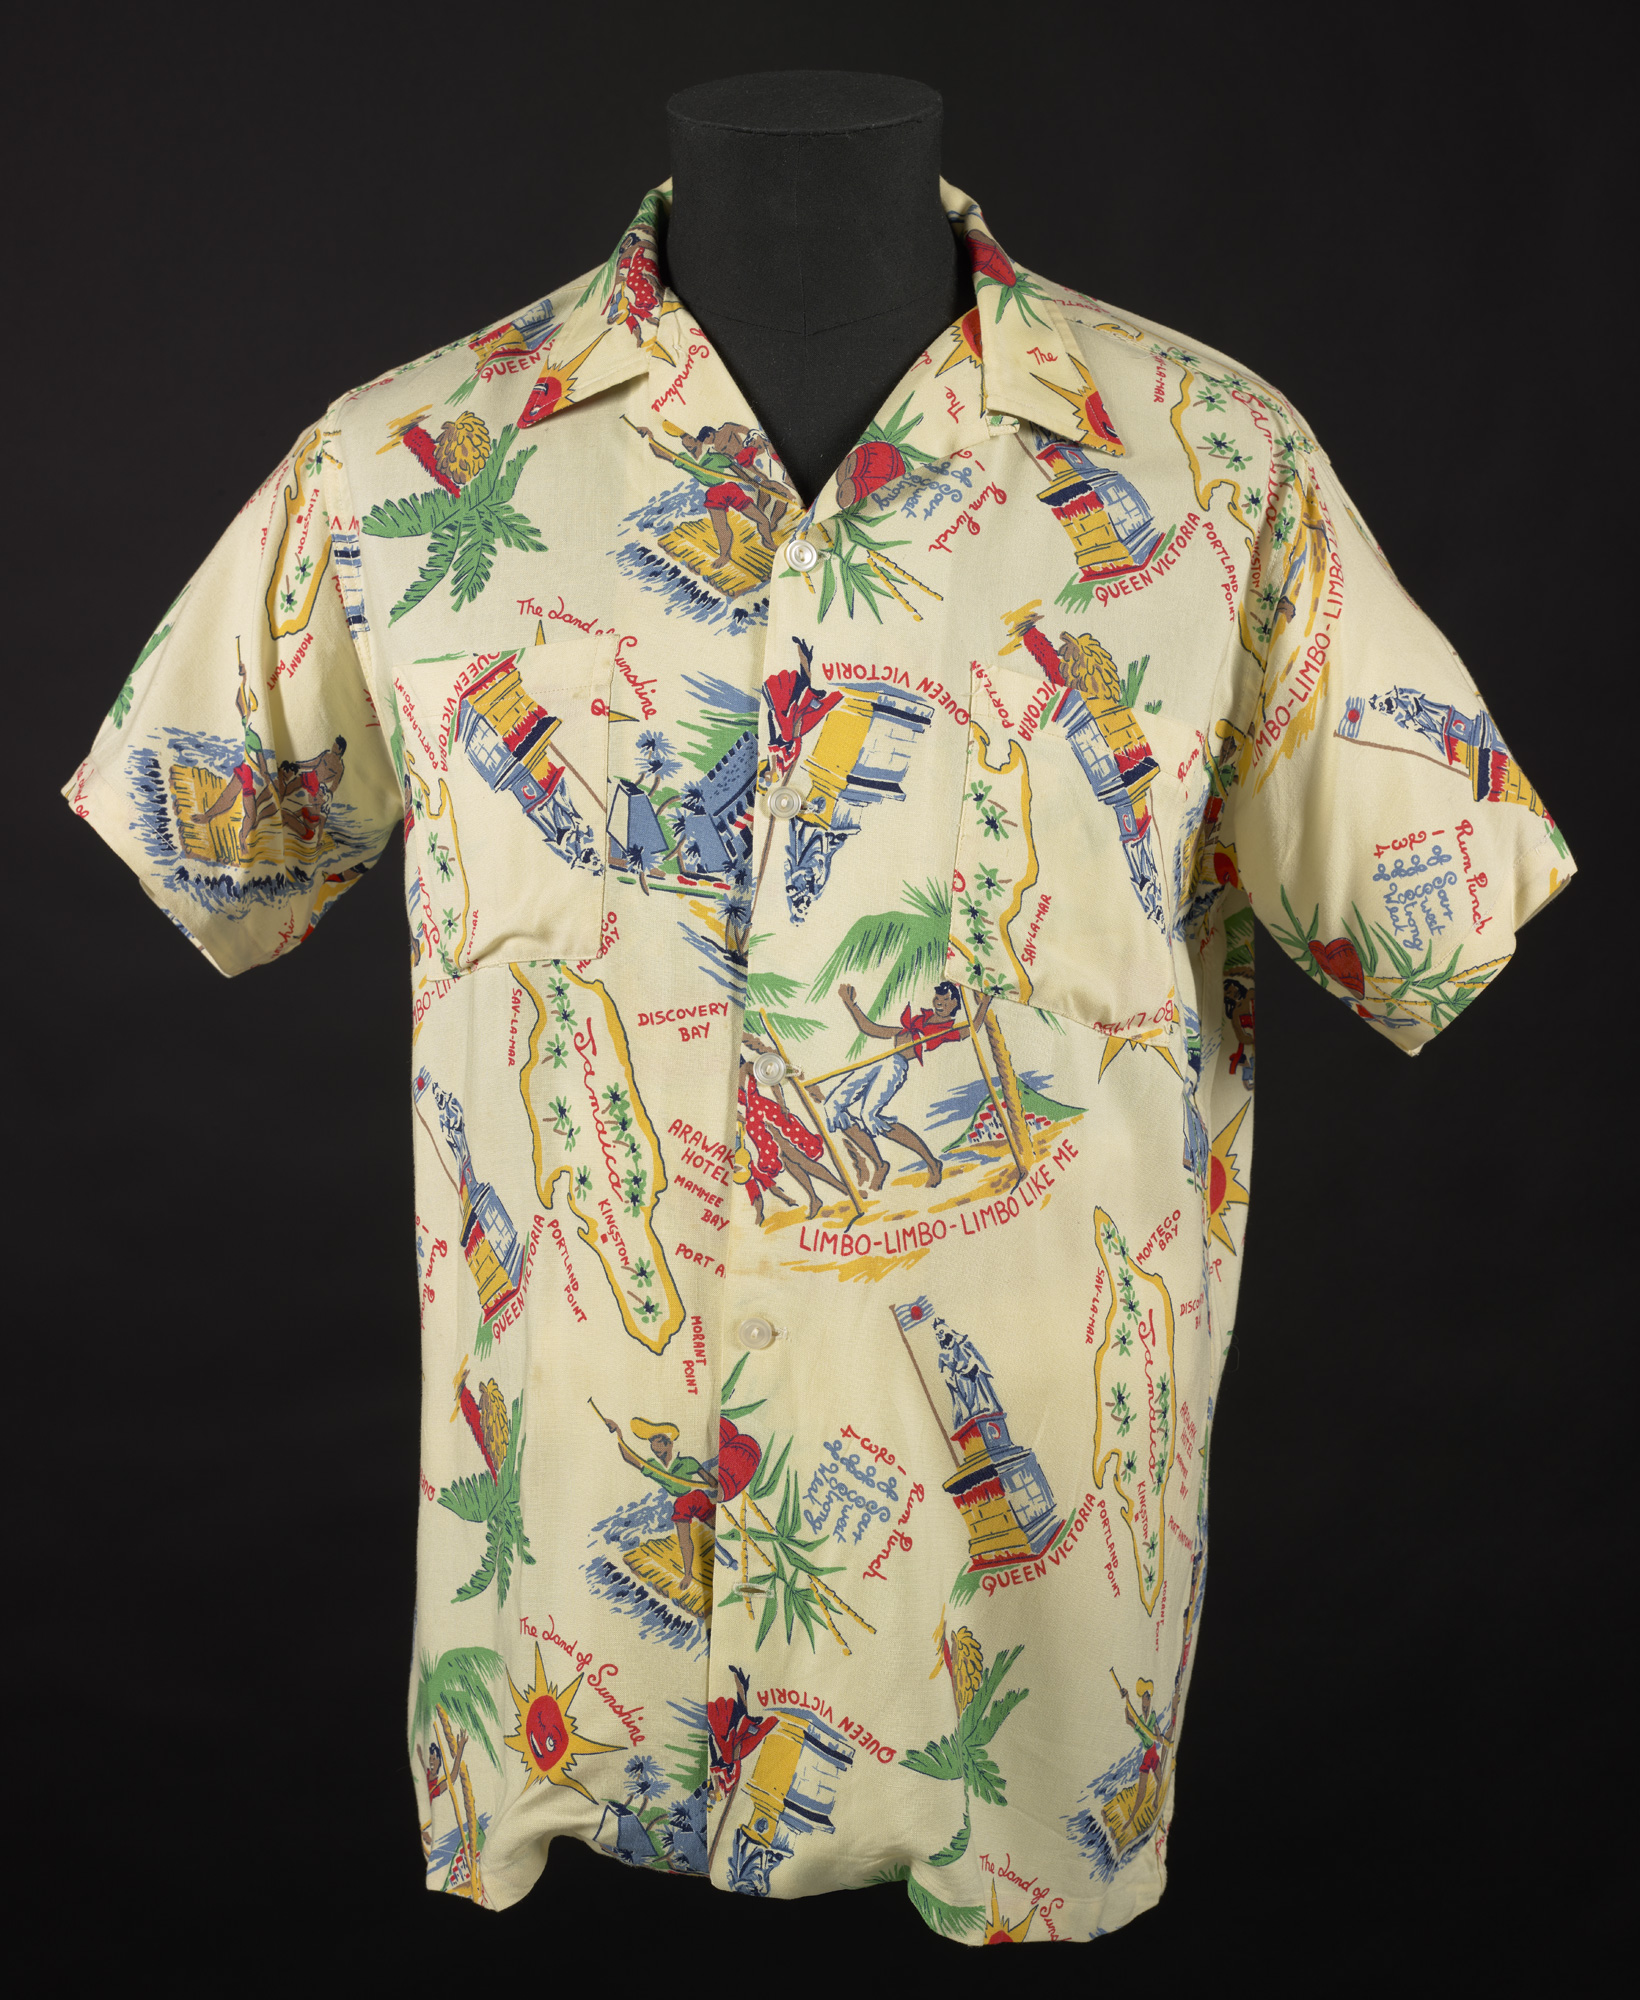 Photograph of the front of Winston Levy's 'Jamaica' shirt